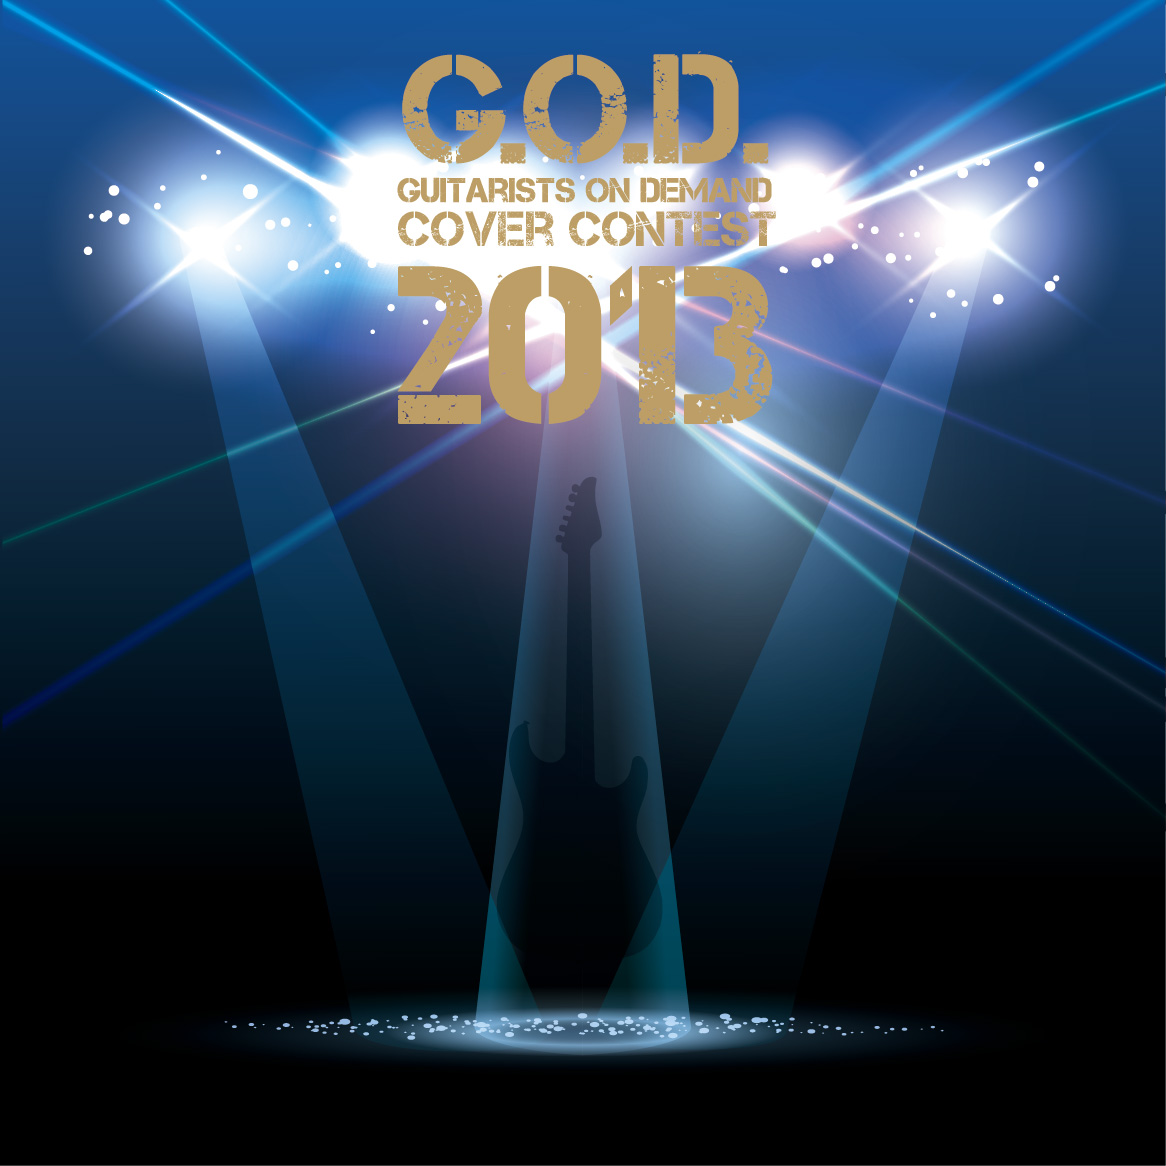 G.O.D. COVER CONTEST結果発表日が9月7日に決定!